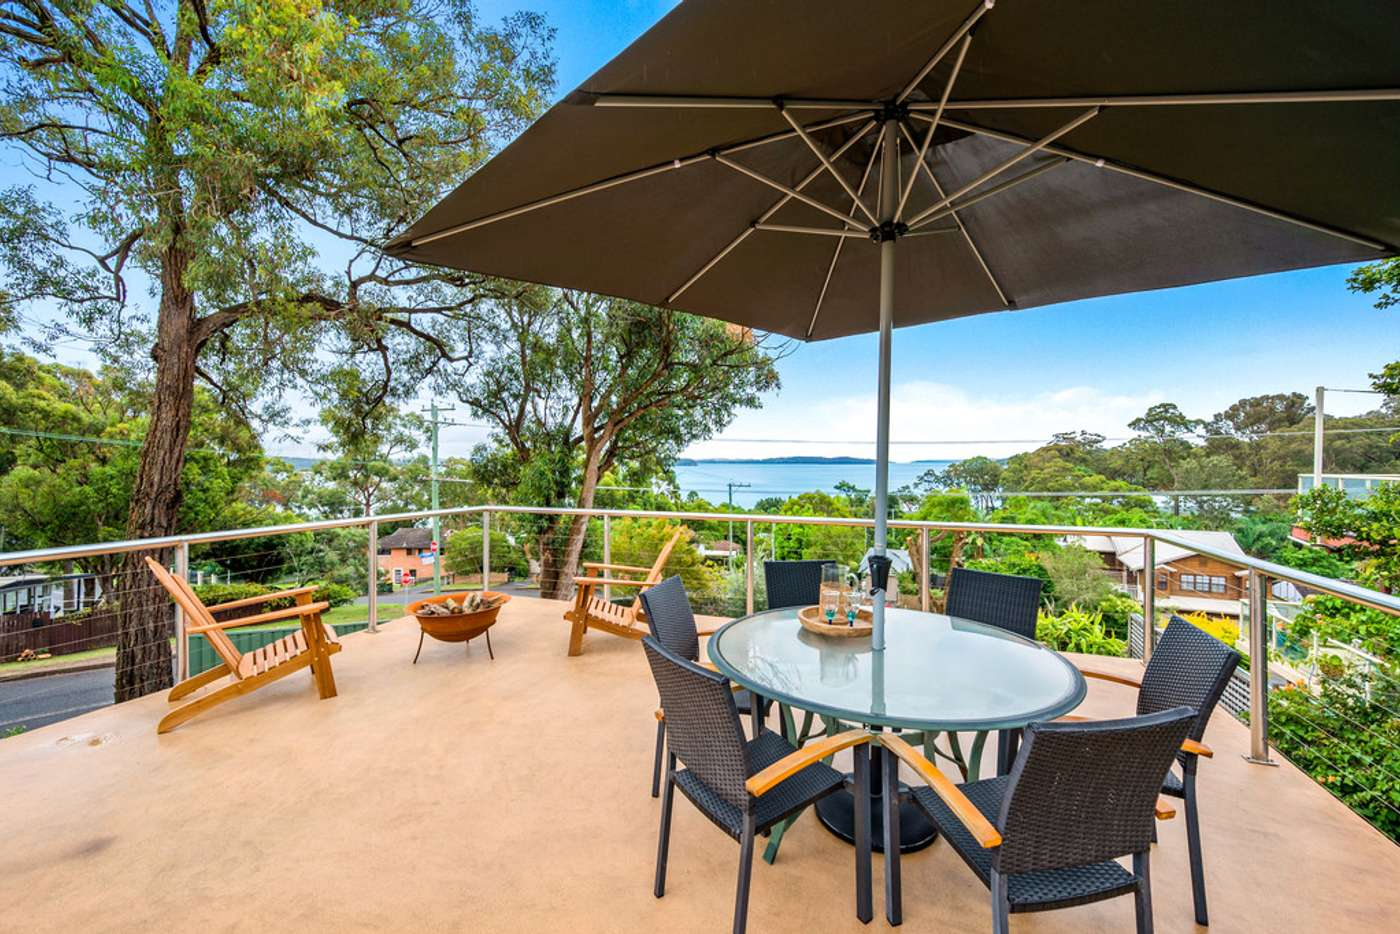 Main view of Homely house listing, 12 Nords Wharf Road, Nords Wharf NSW 2281